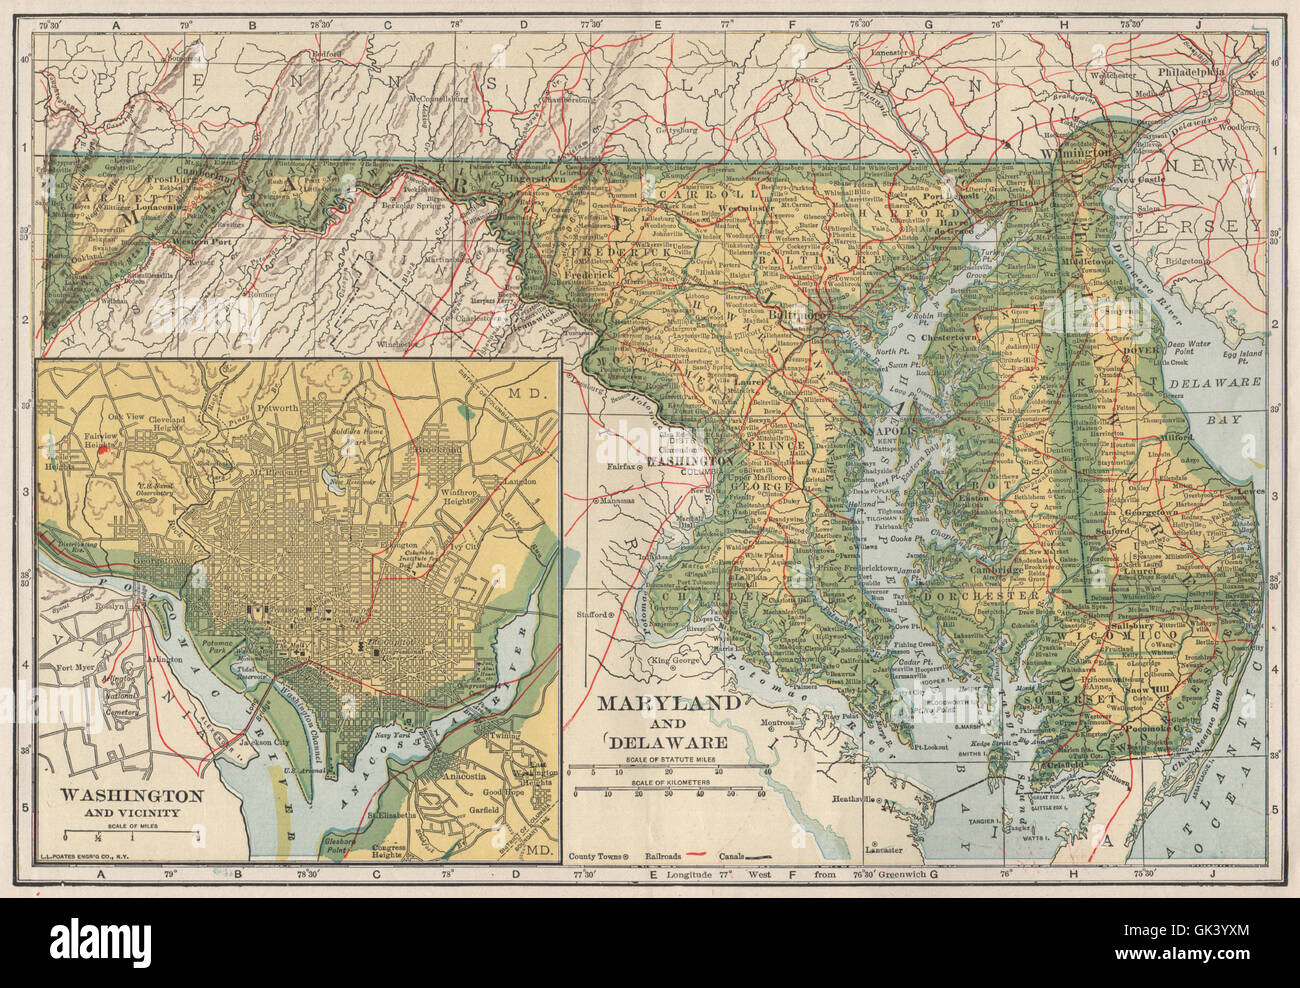 Maryland, Delaware & Washington DC state map showing railroads Stock ...